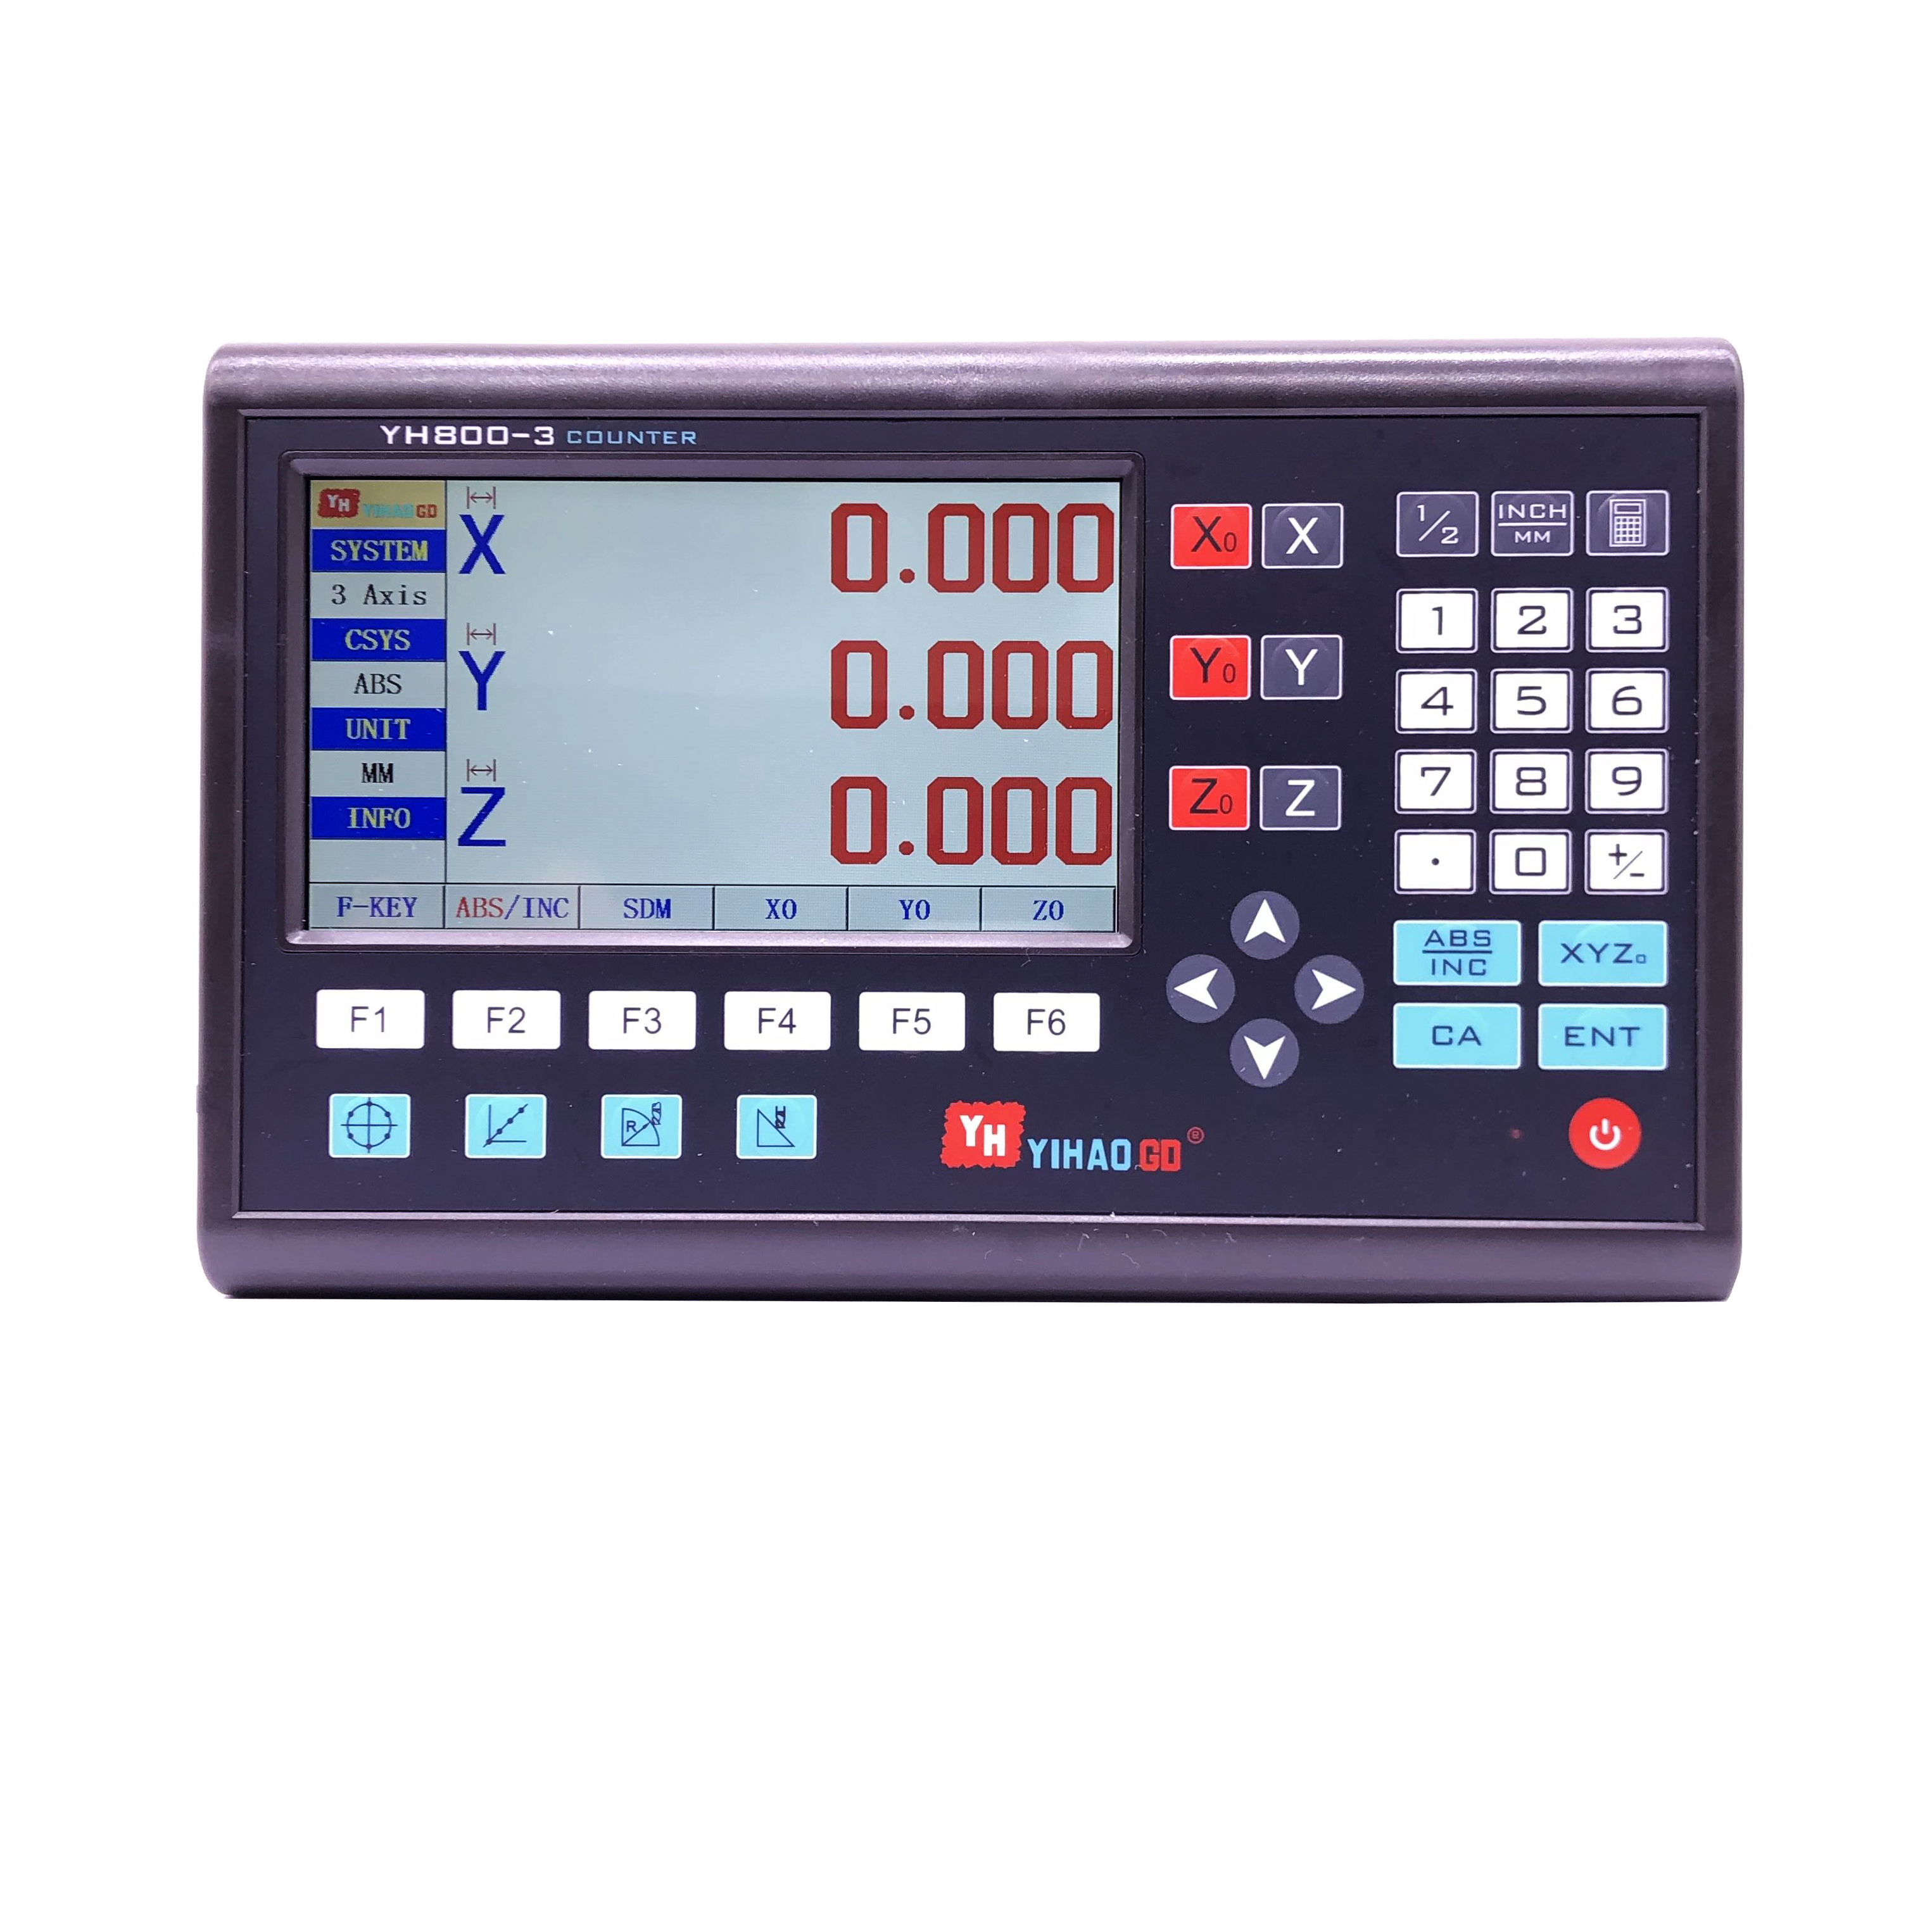 2//3 Axis Digital Readout  DRO Display For Linear Scale CNC Milling Lathe Encoder